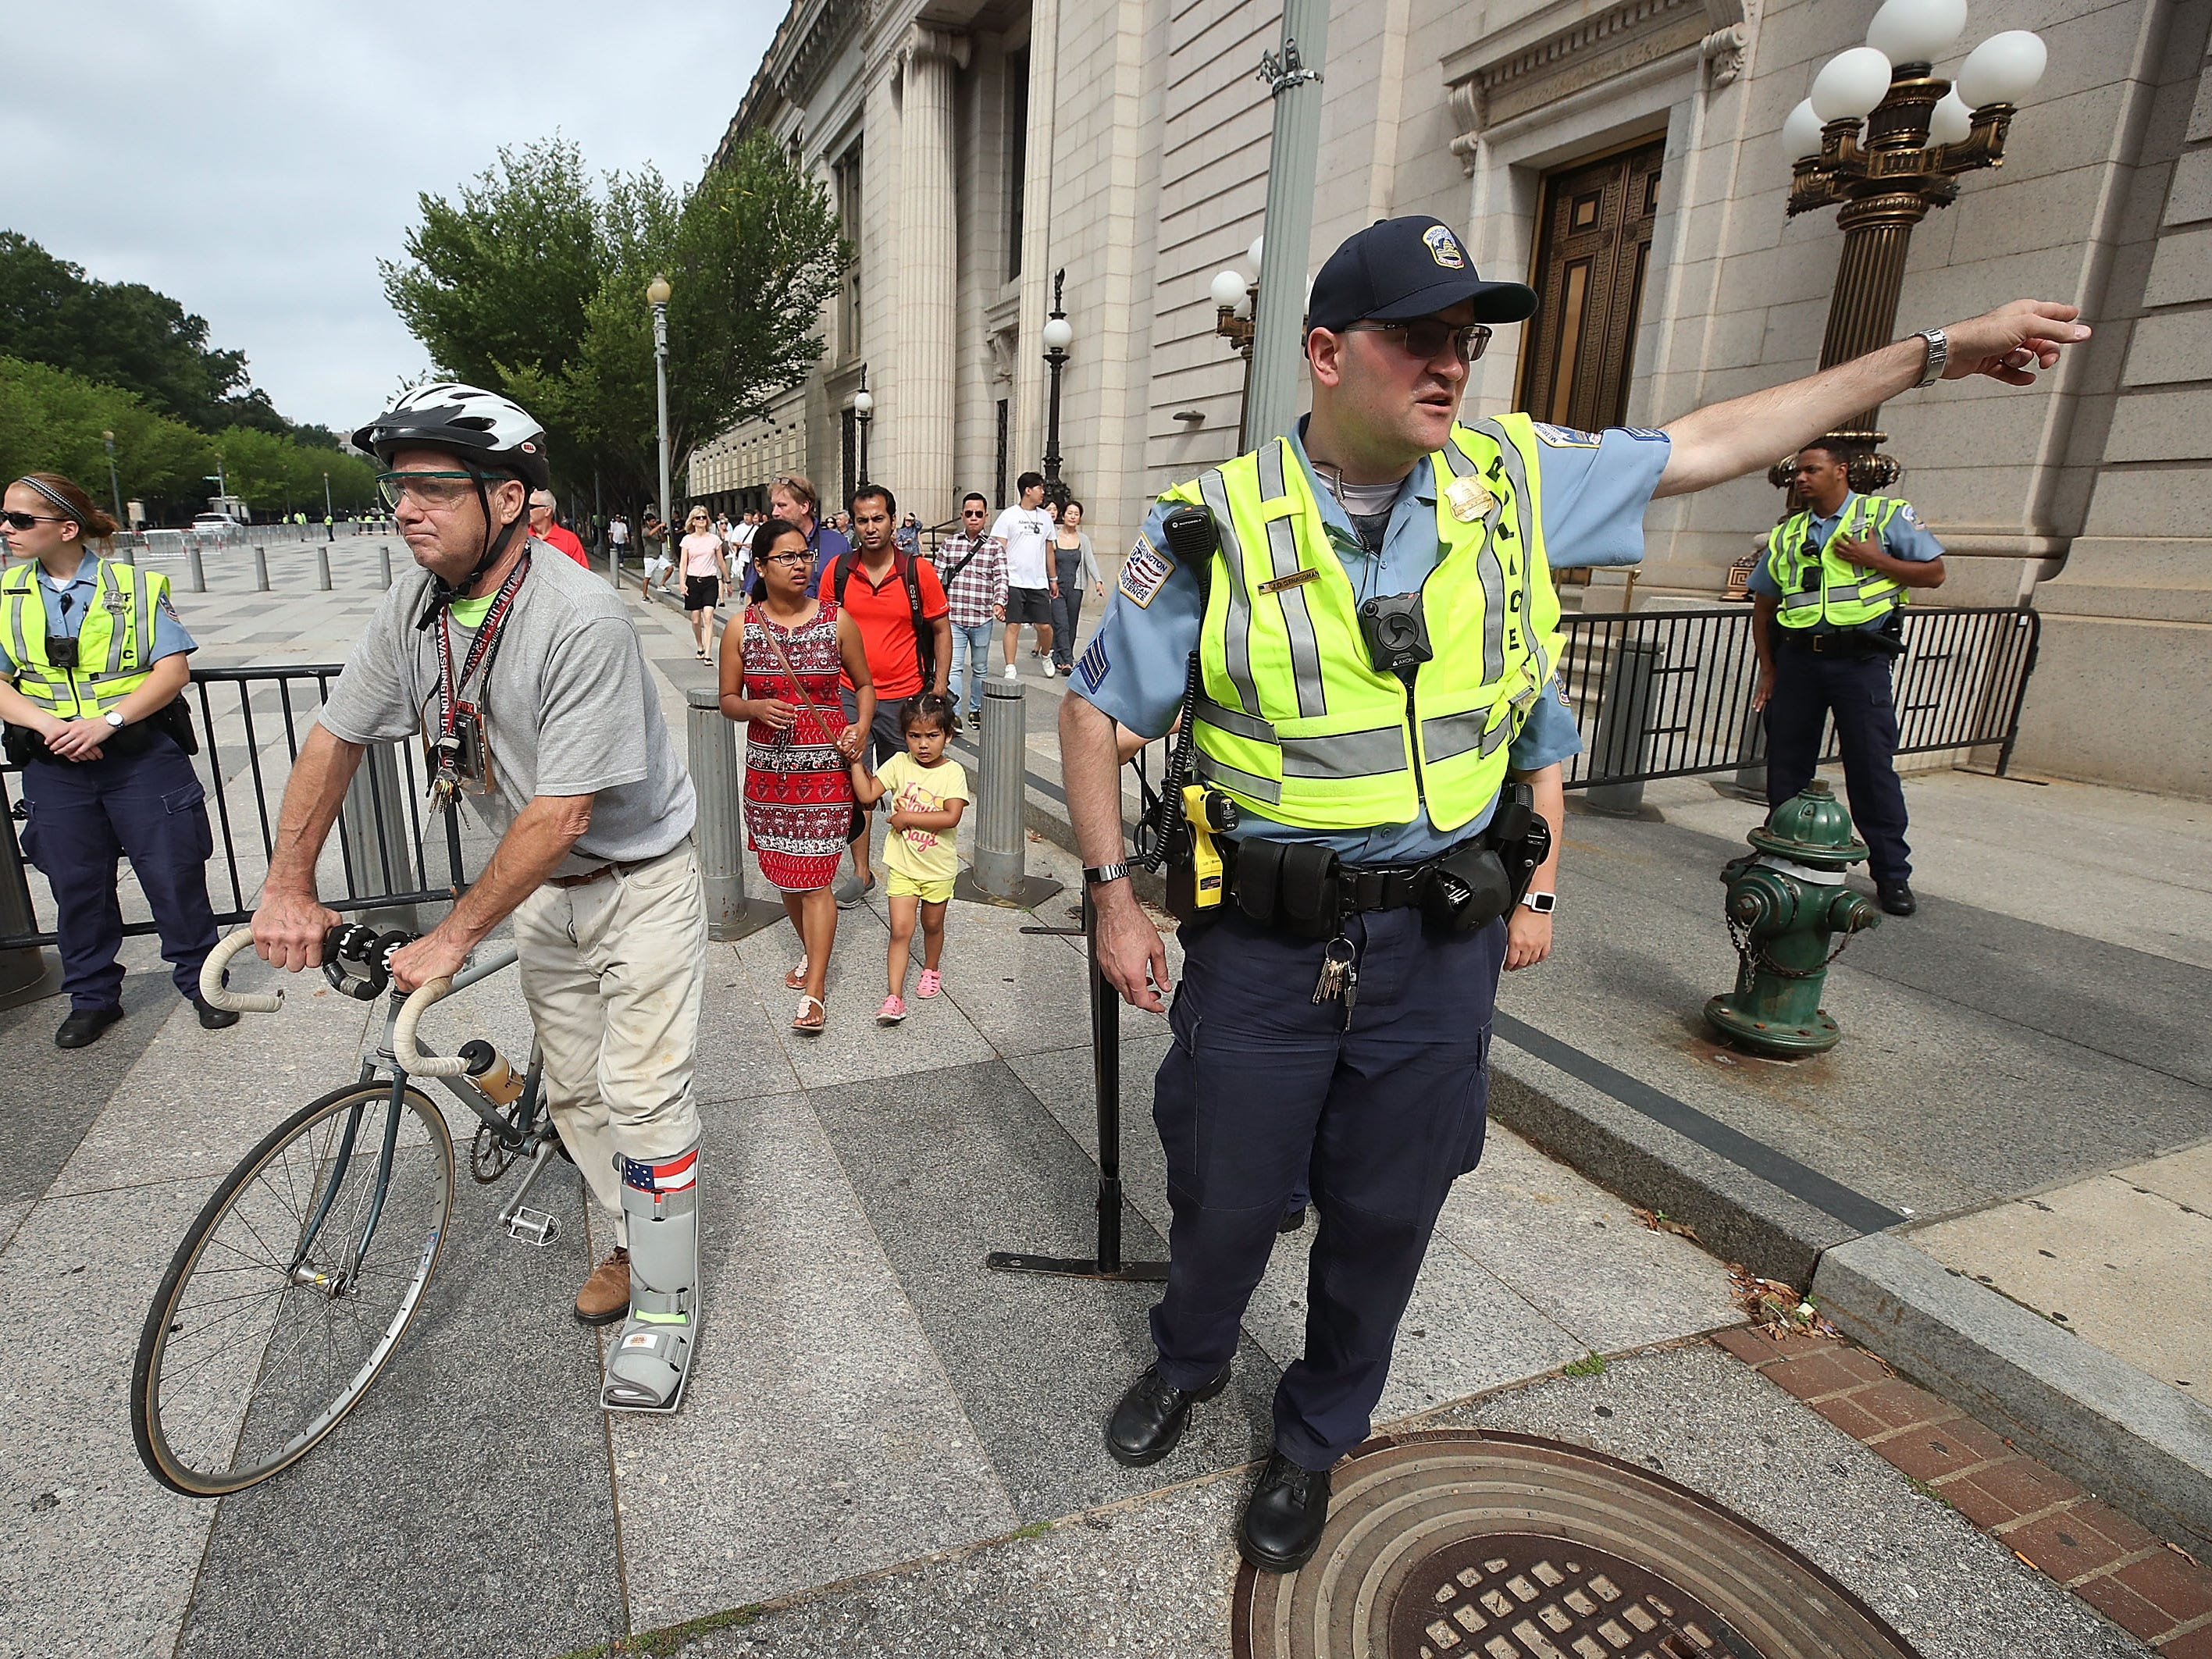 DC Metropolitan Police close down Pennsylvania Ave. to pedestrian traffic ahead of a white supremacists, neo-Nazis, members of the Ku Klux Klan and other hate groups gathering for the Unite the Right rally in Lafayette Park across from the White House Aug. 12, 2018 in Washington, DC.